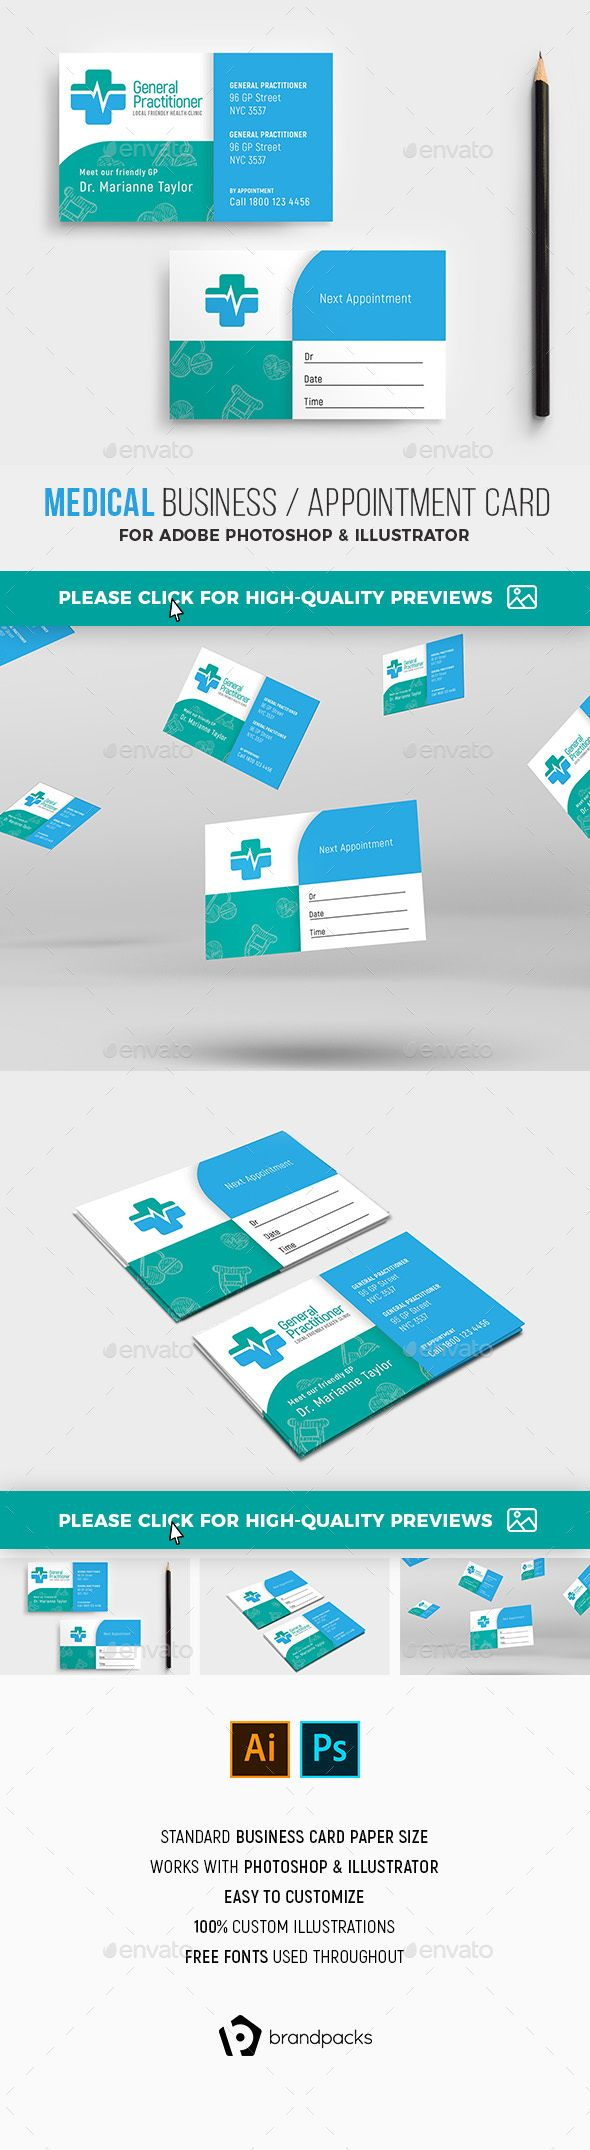 A Business Card Size Template In Photoshop Illustrator Format For